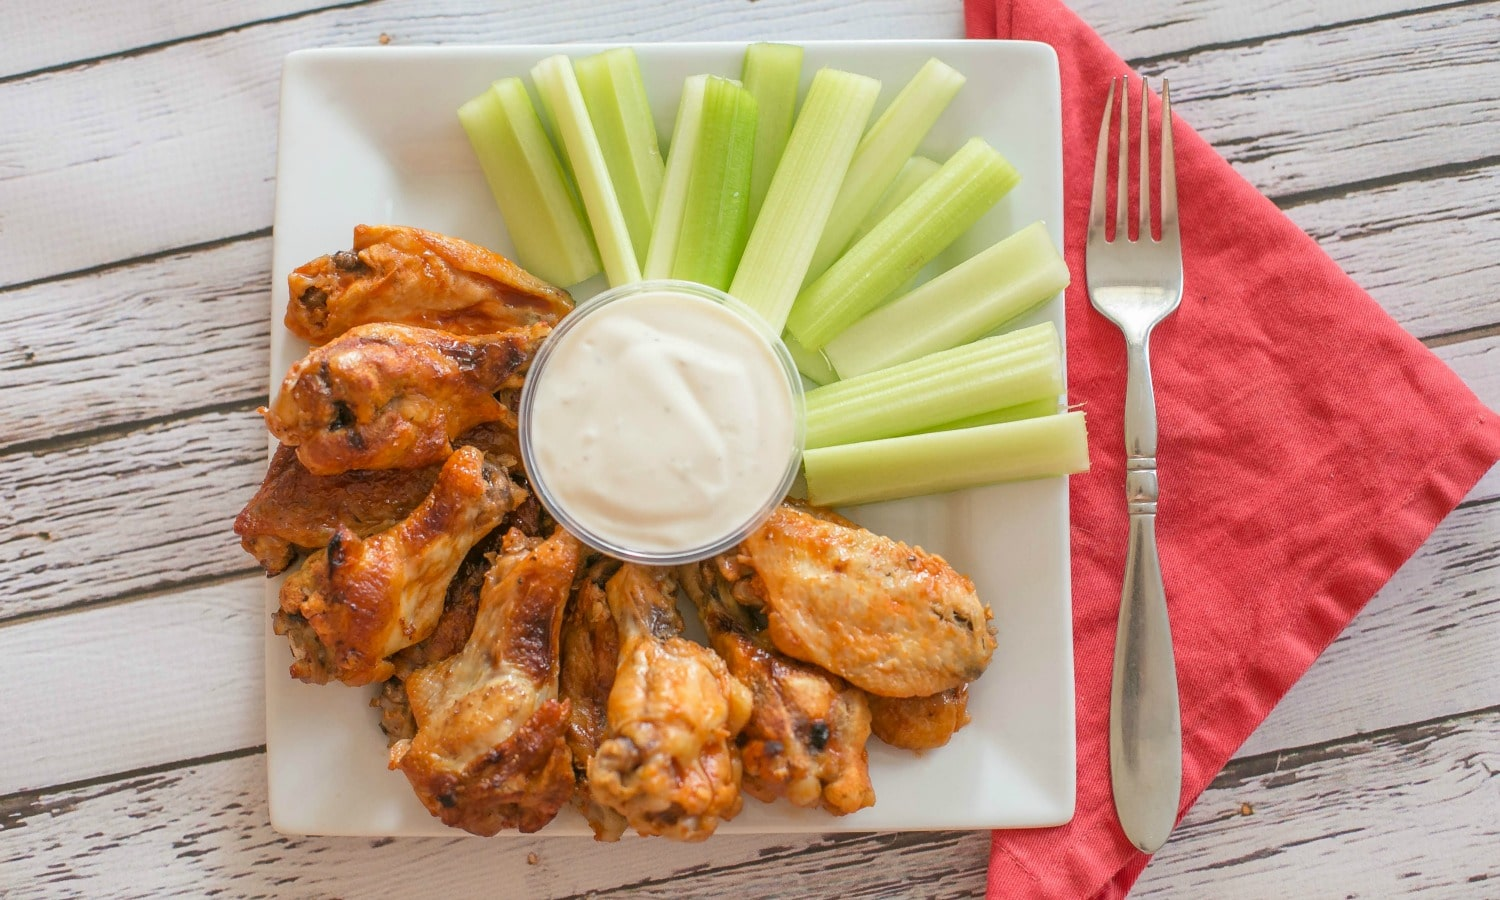 Does it get any better than buffalo wings and celery with blue cheese dipping sauce? Grab your fork and don't forget a napkin!